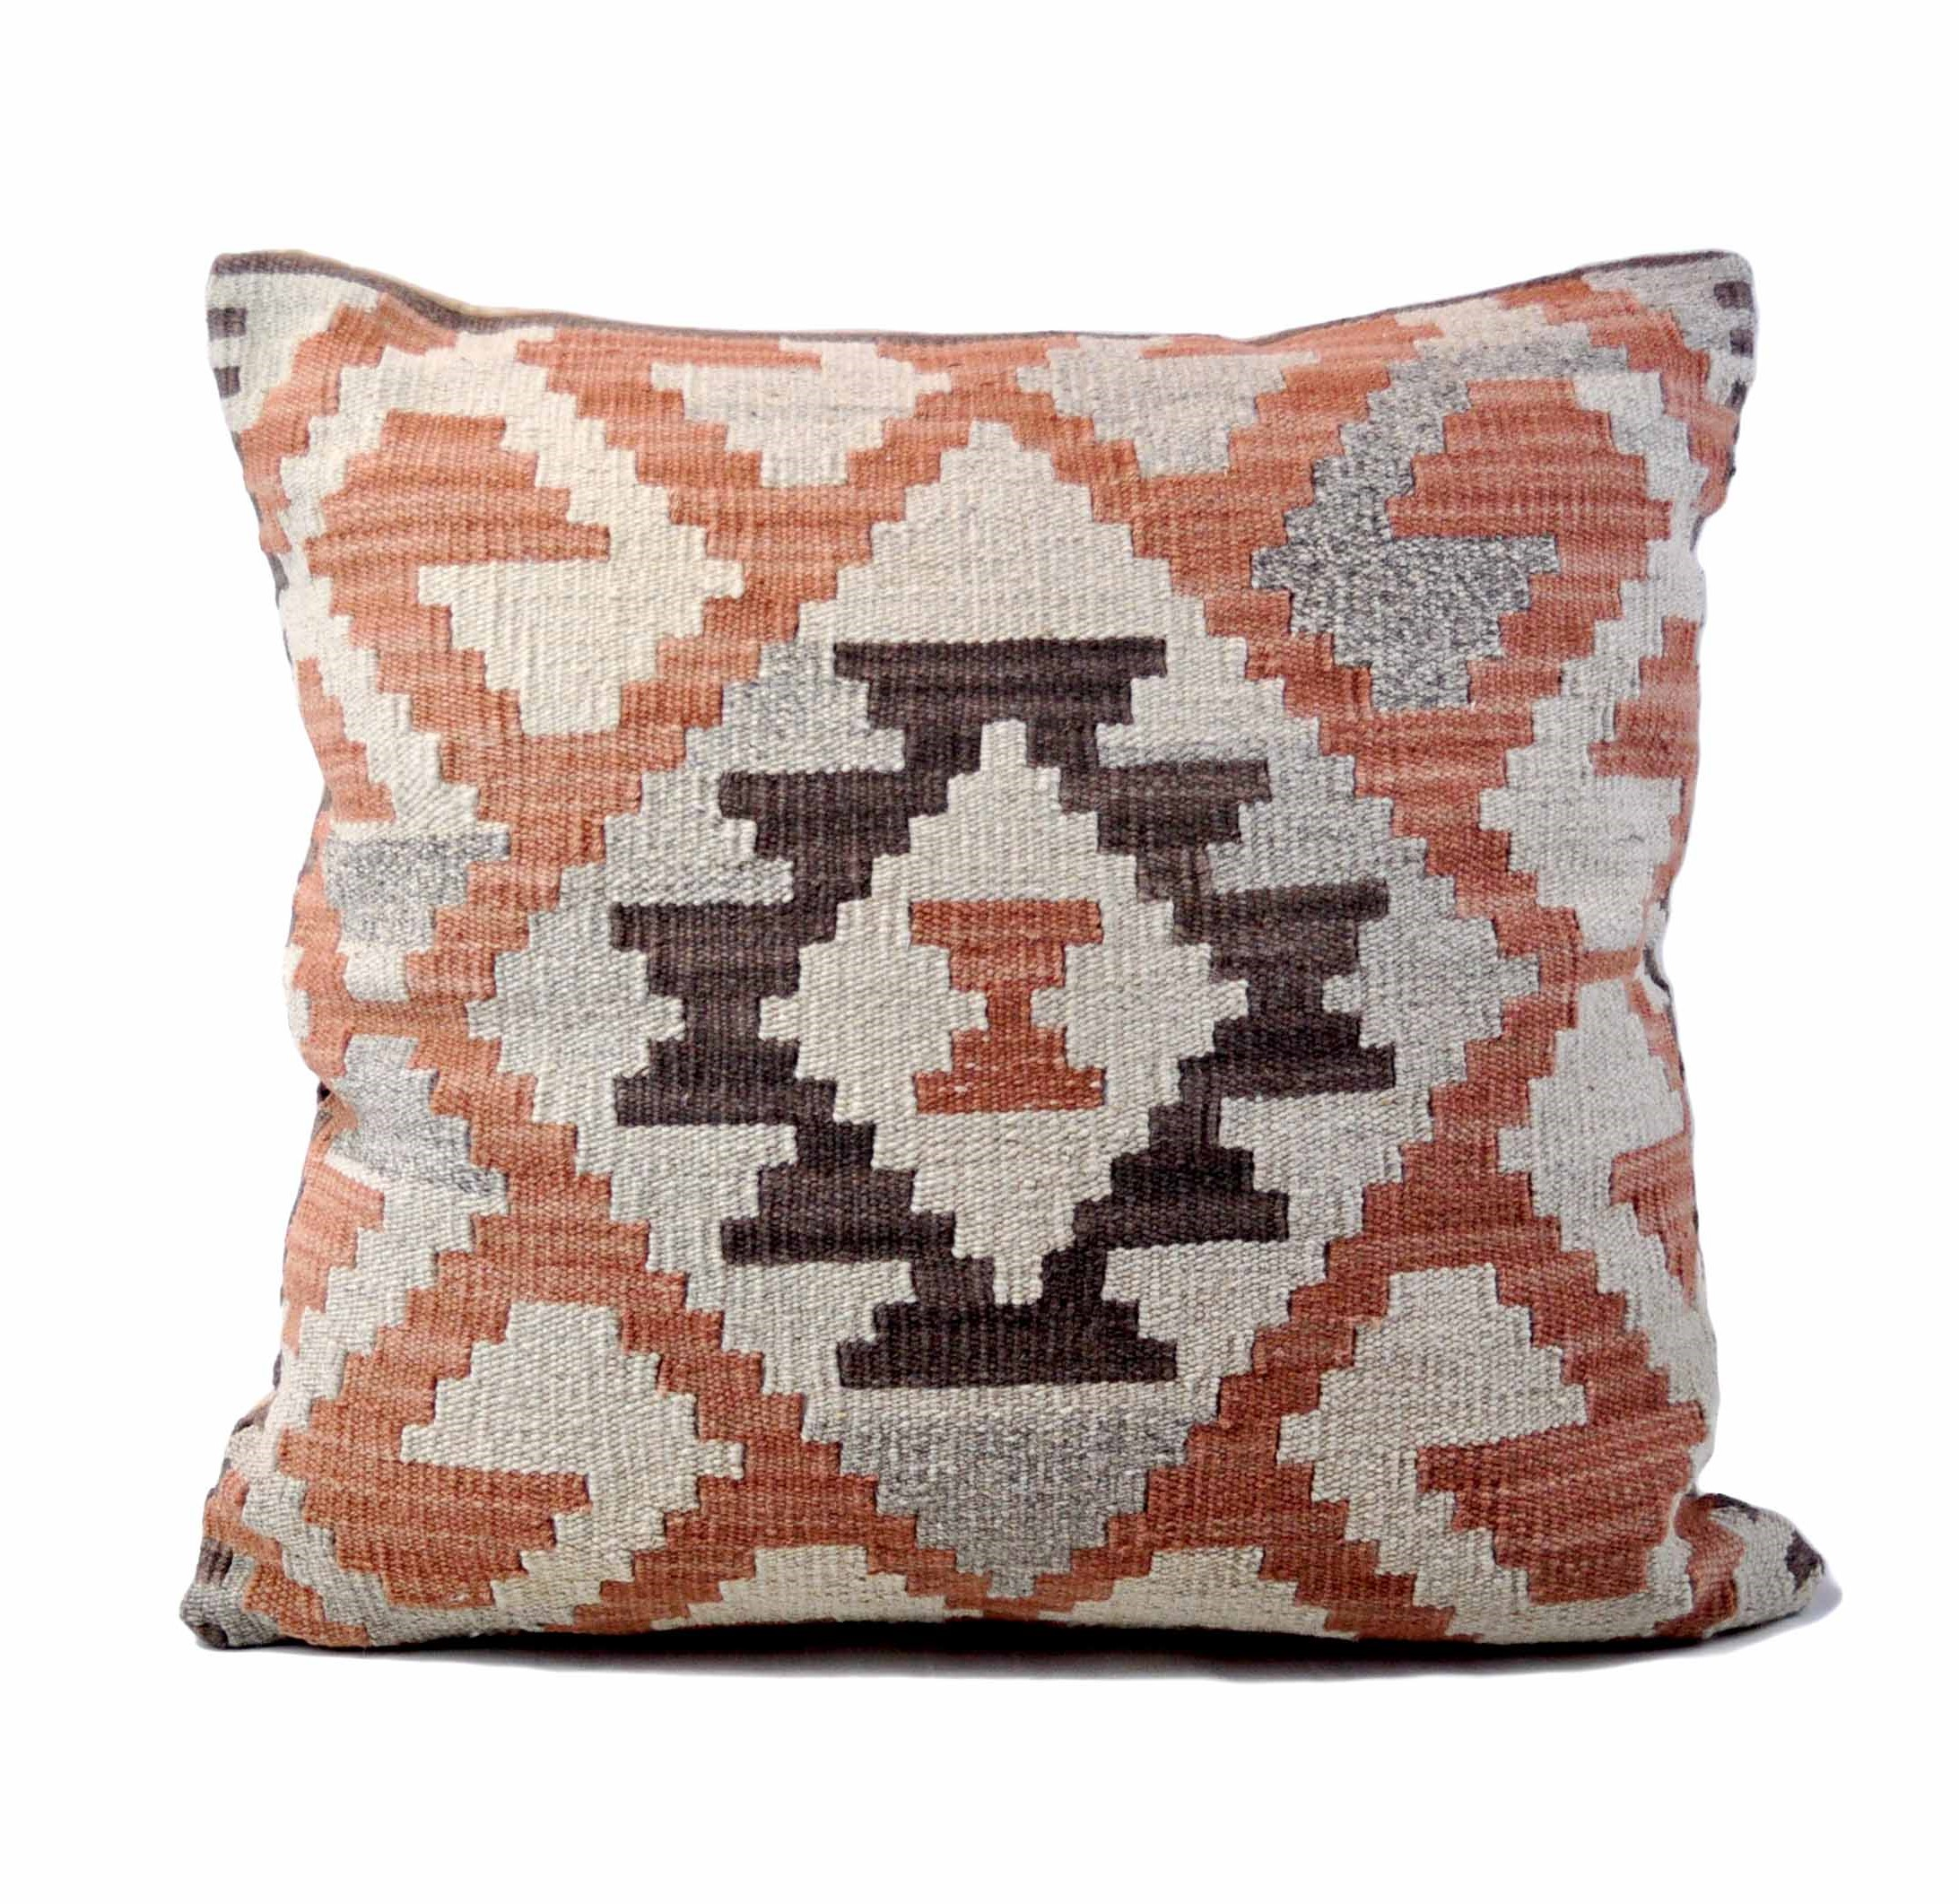 24×24 Hand-woven Wool Kilim Pillow Cover 12981031